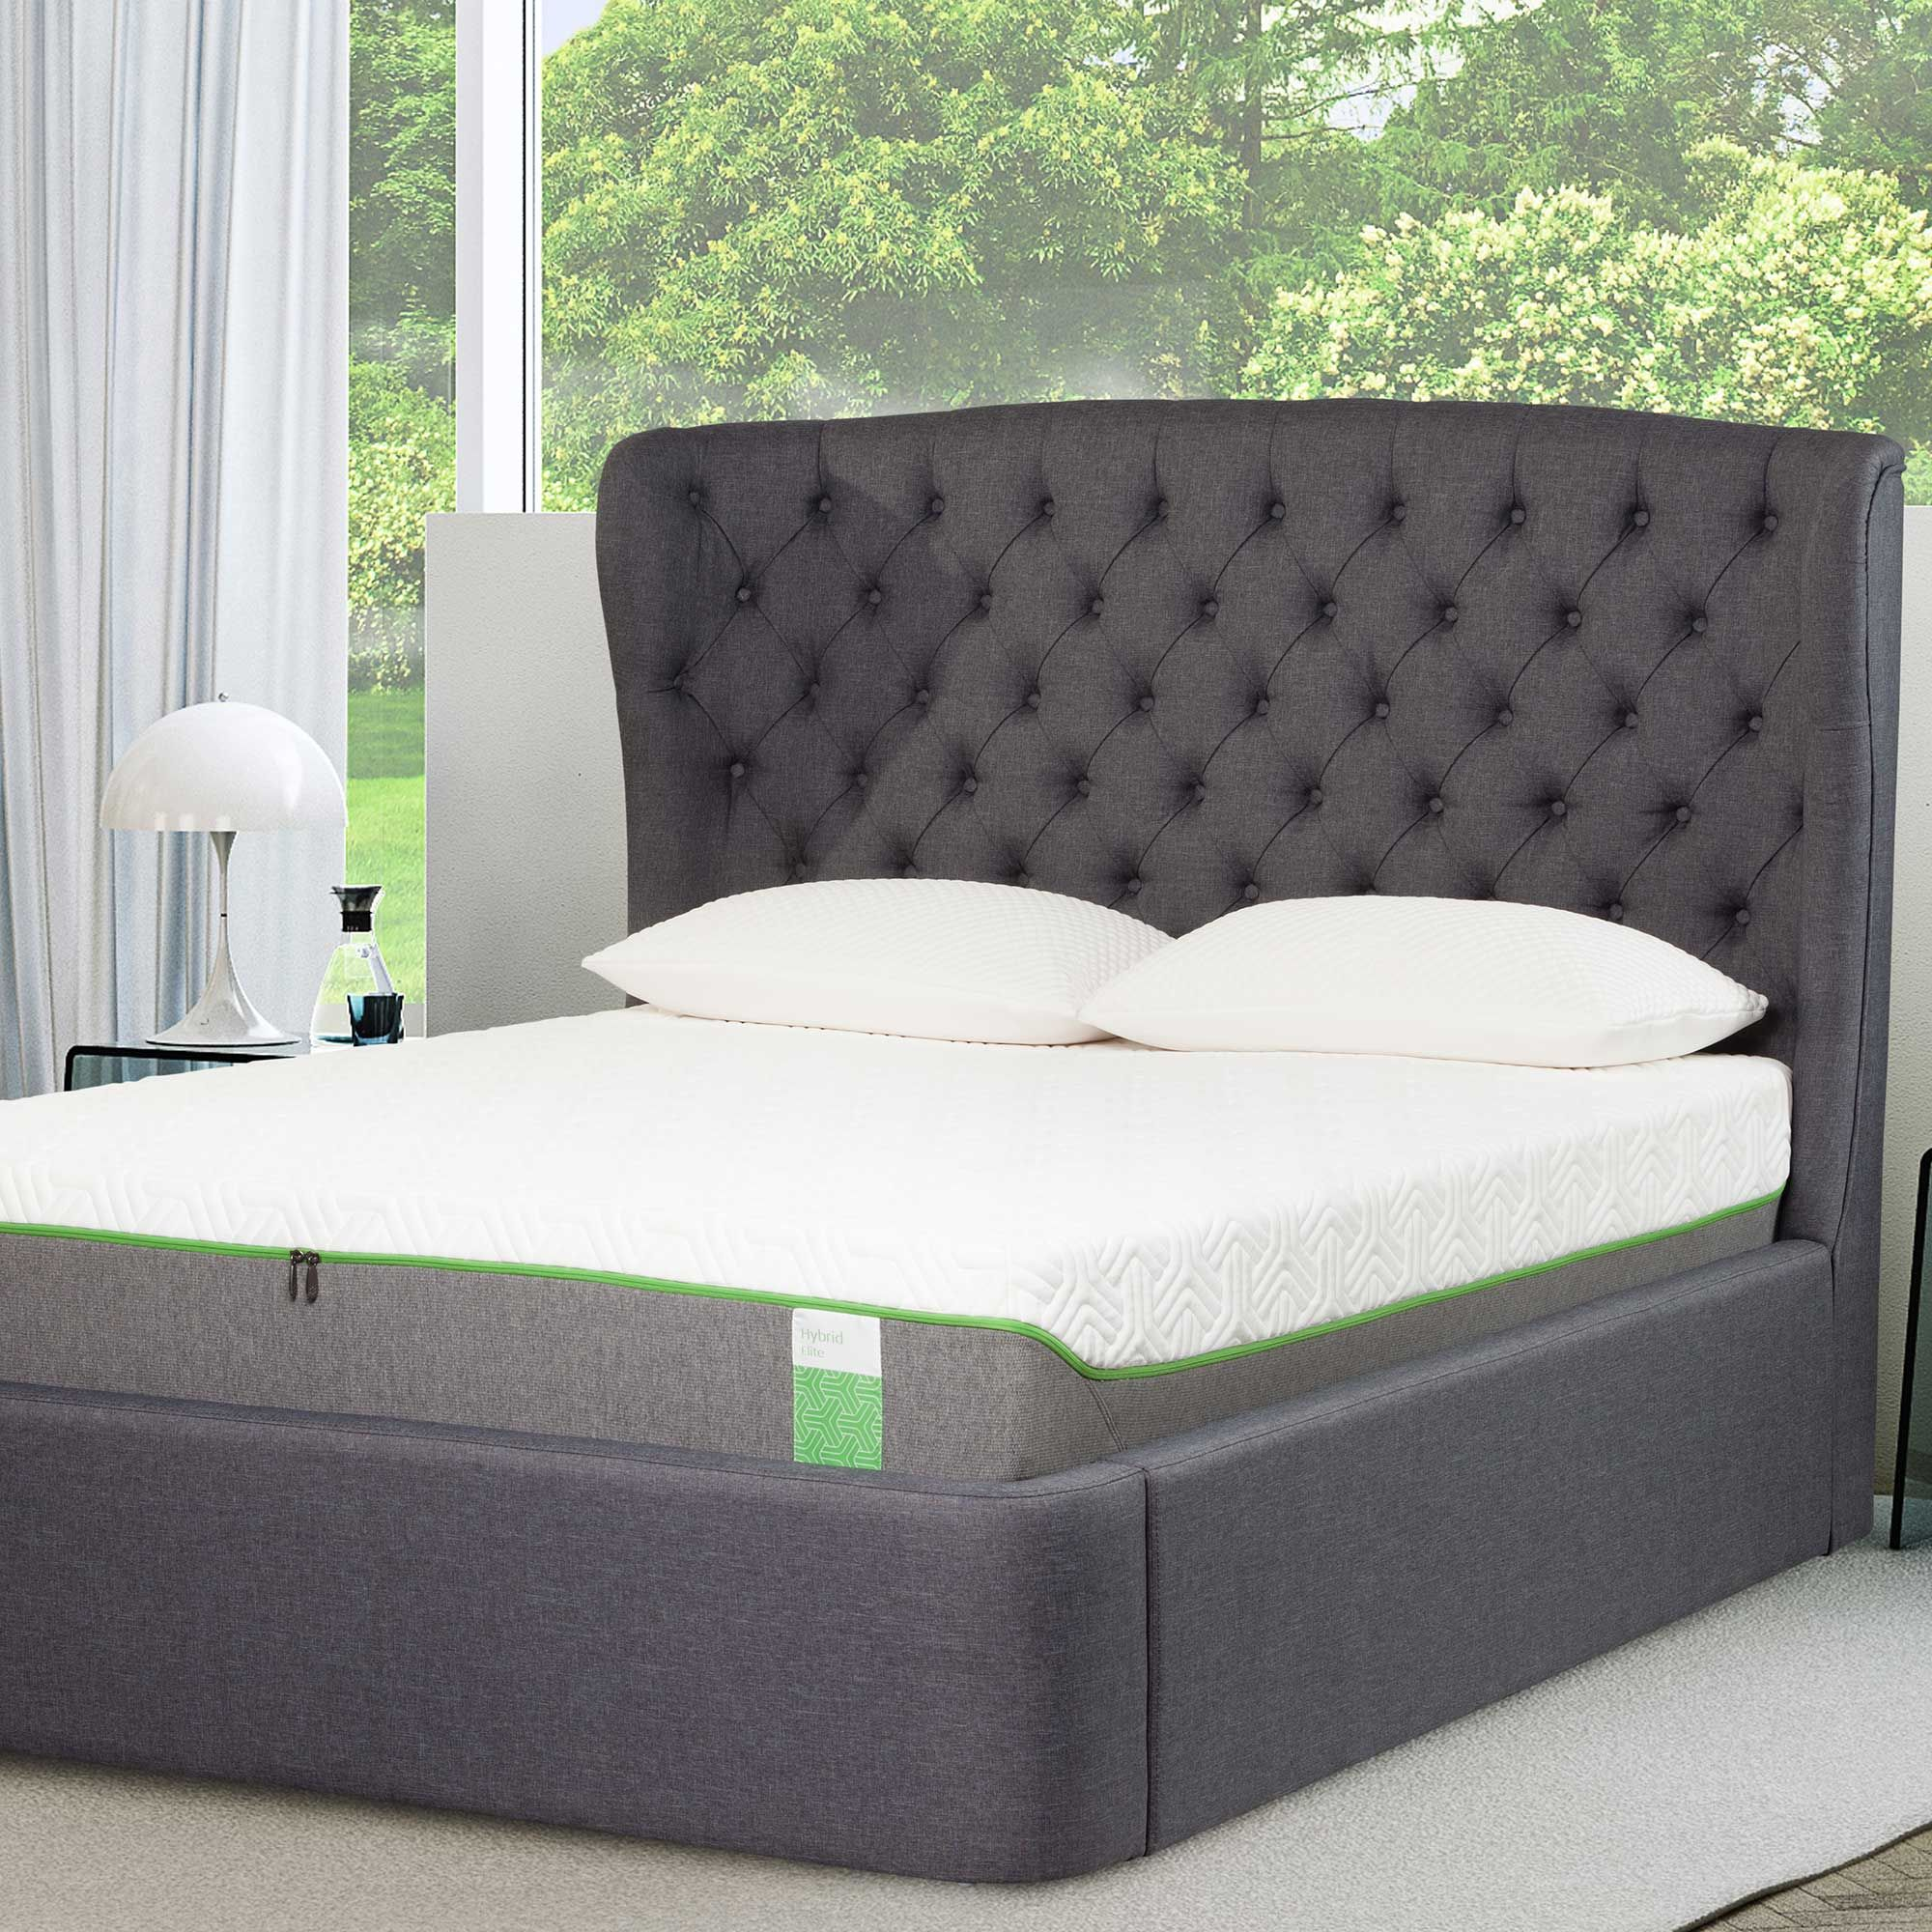 Surprising Tempur Holcot Ottoman Bed Ash Ottoman Beds Bedroom In Ocoug Best Dining Table And Chair Ideas Images Ocougorg